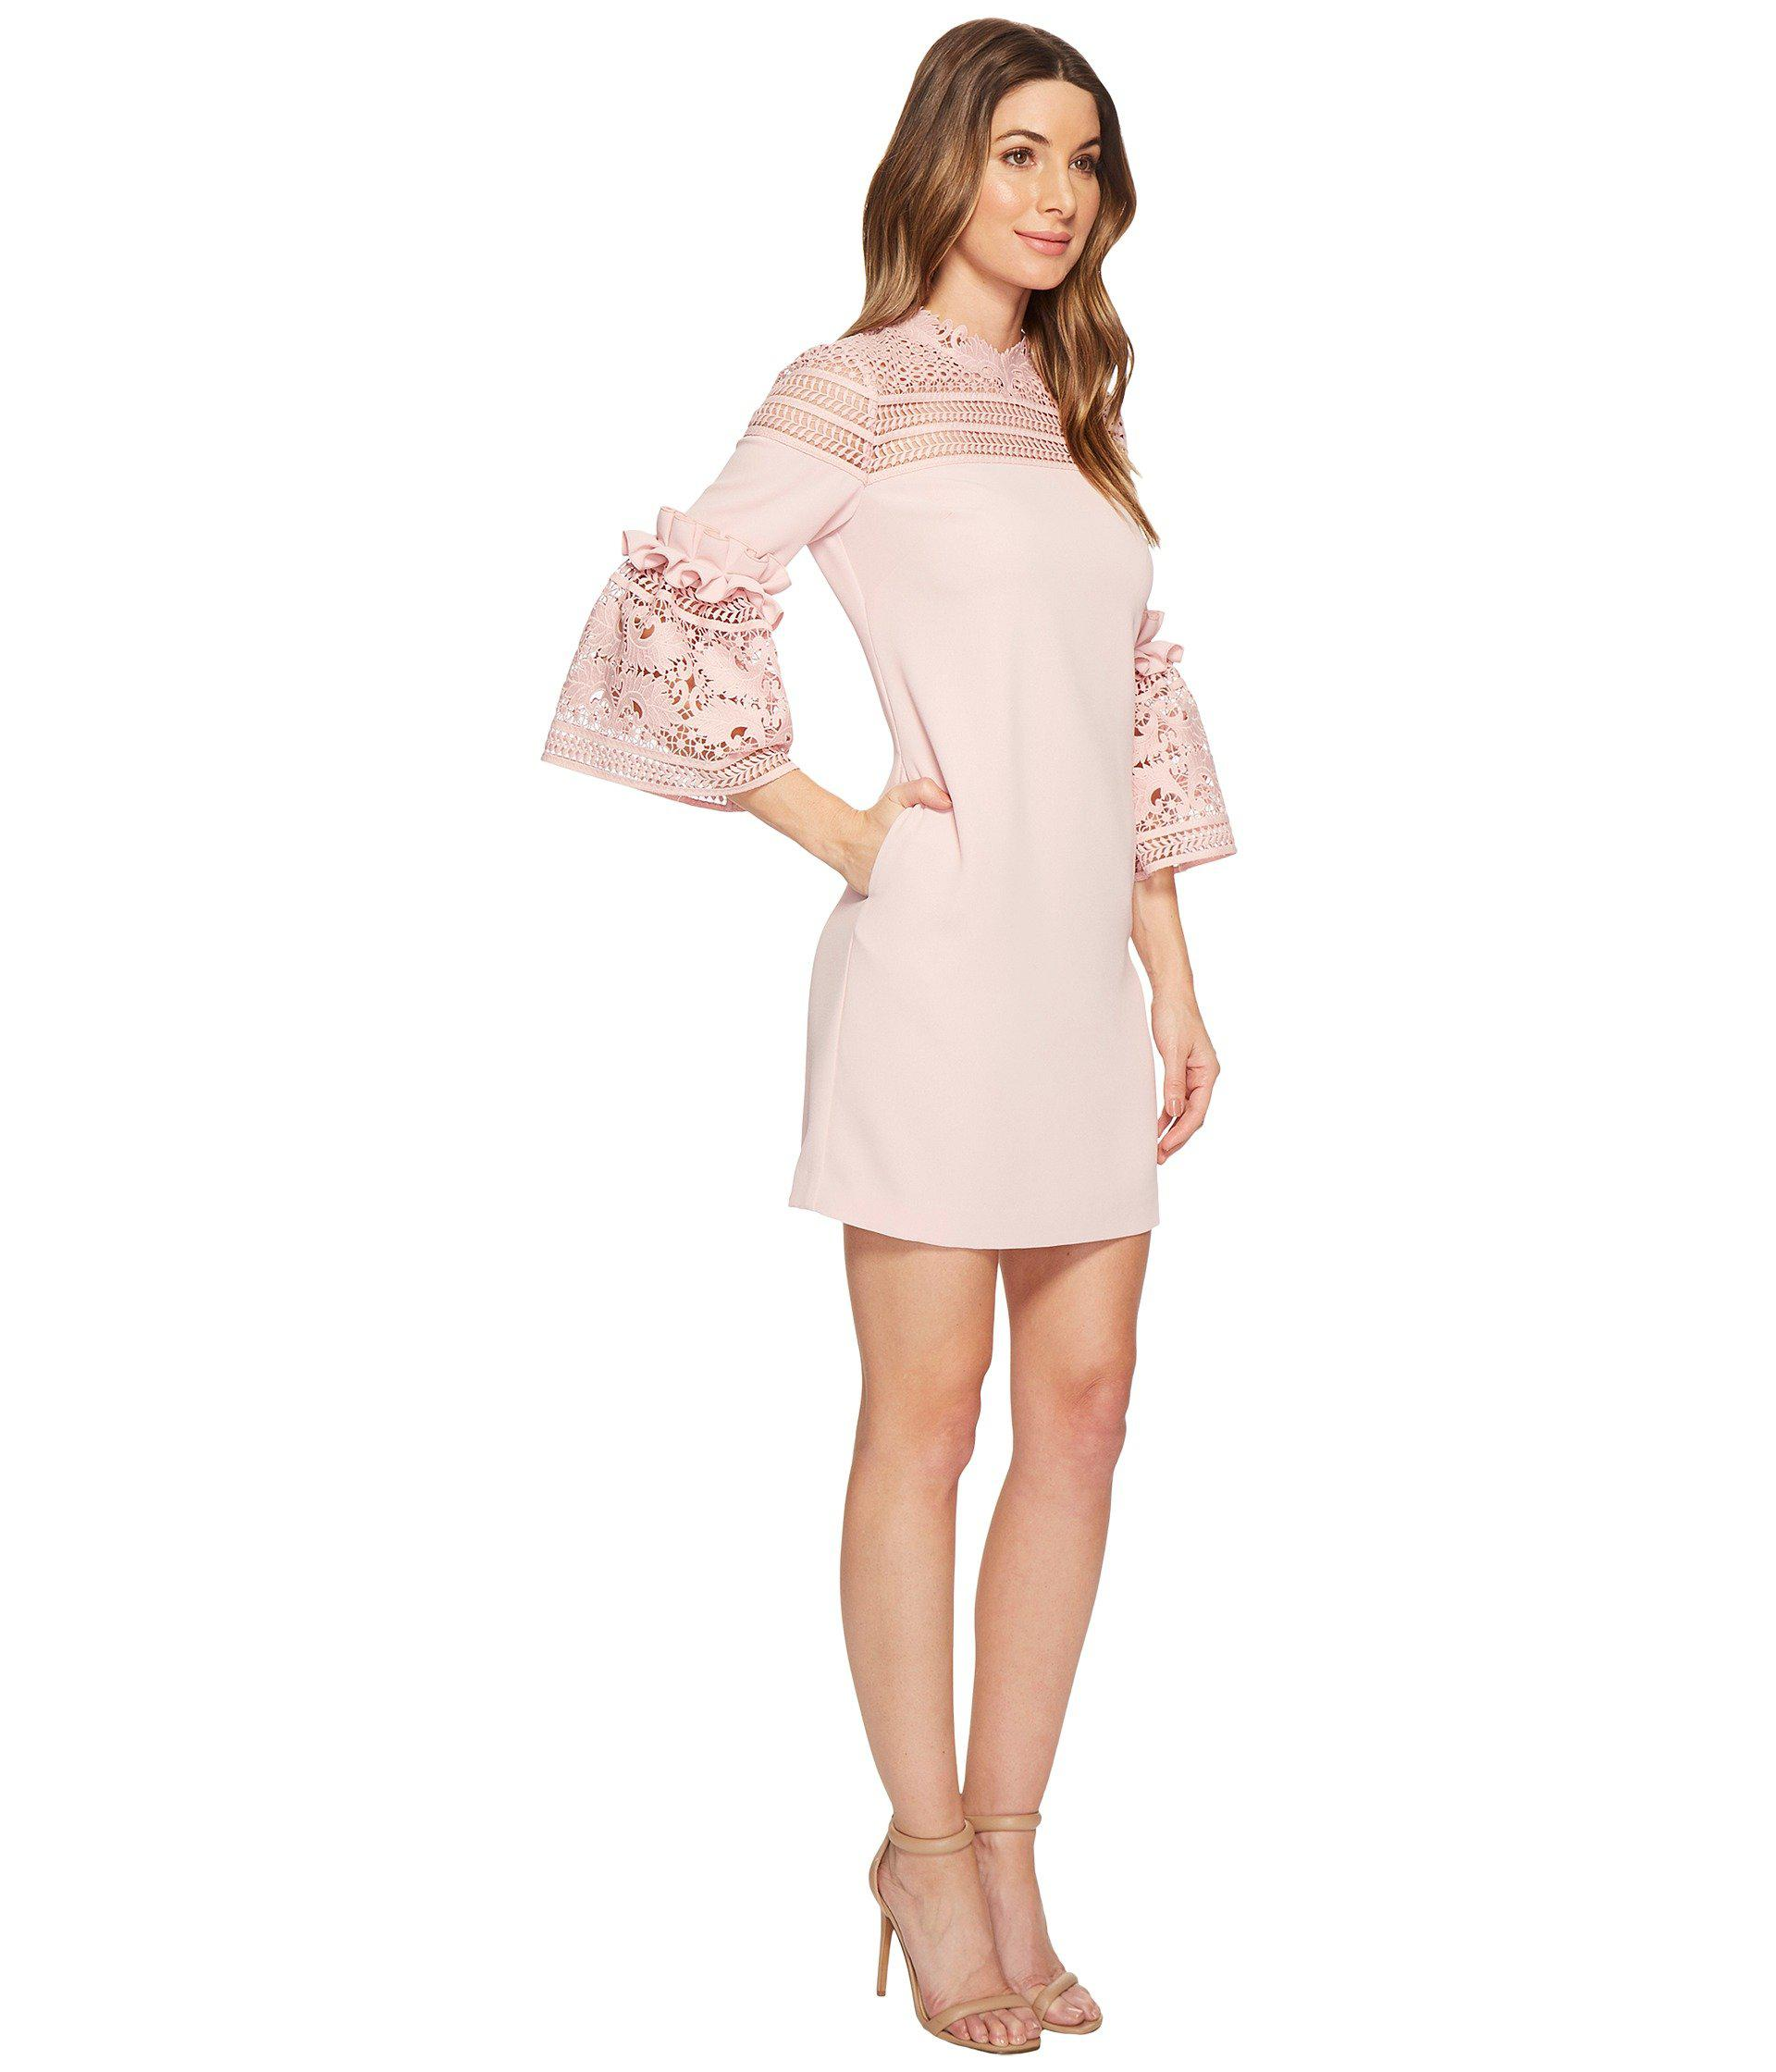 8d2efc5f5 Lyst - Ted Baker Lucila Lace Panel Bell Sleeve Tunic in Pink